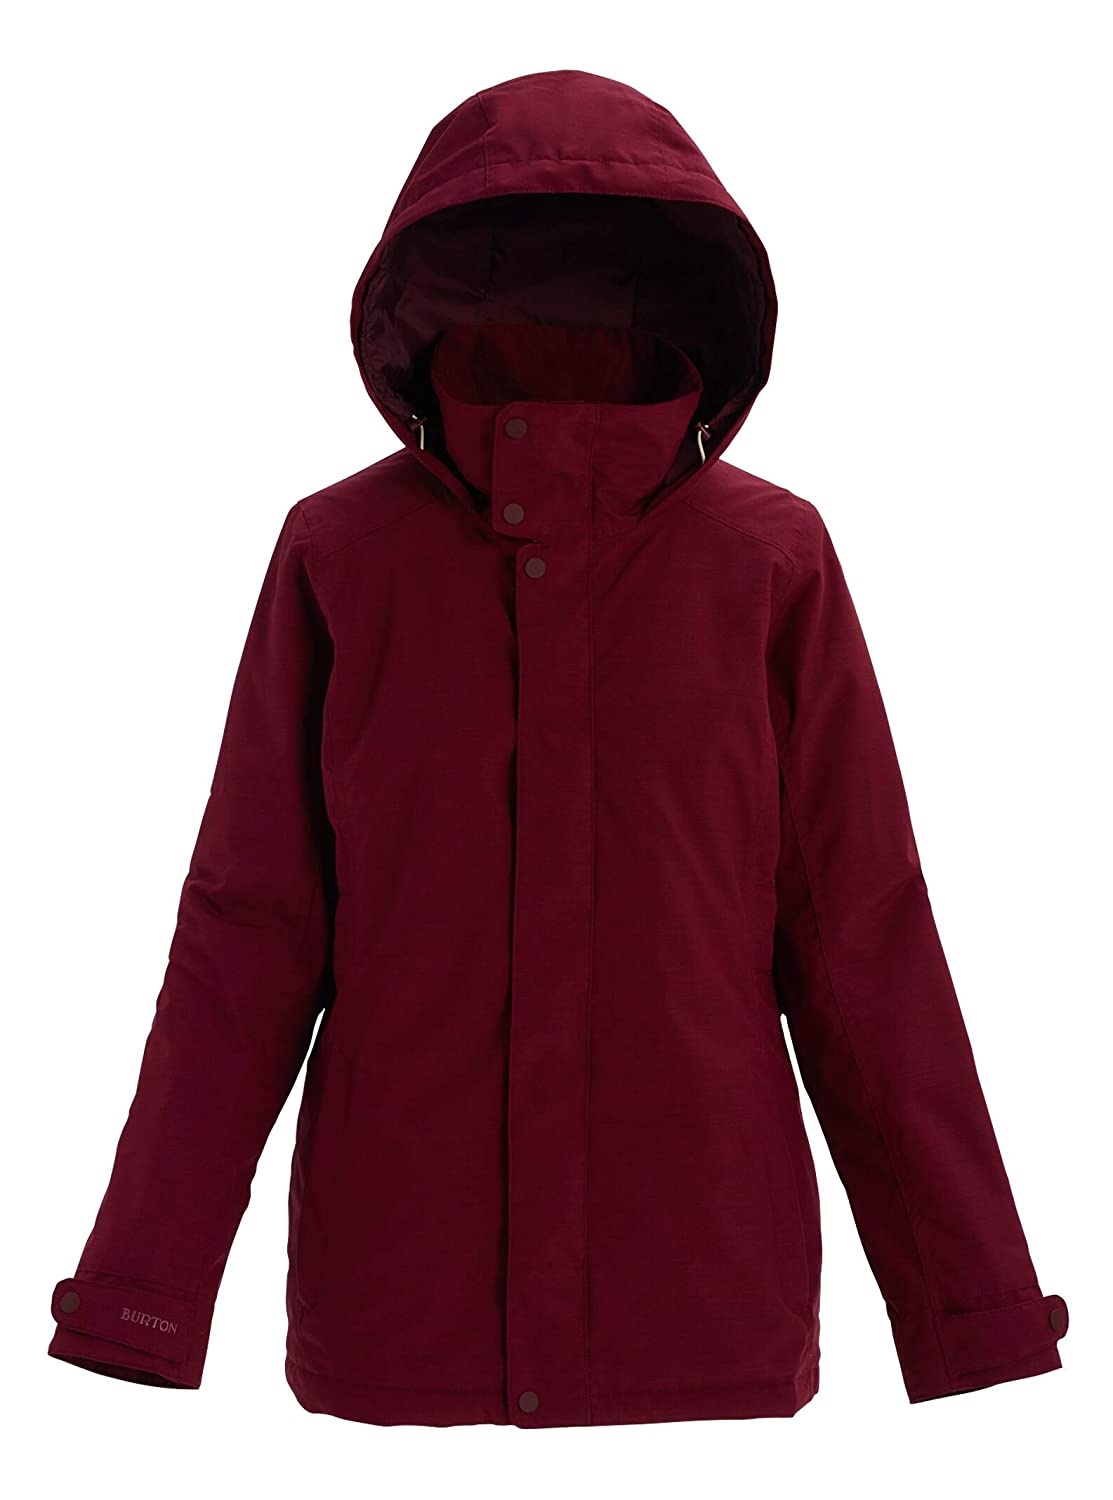 Port Royal Heather Burton Women's Jet Set Jacket